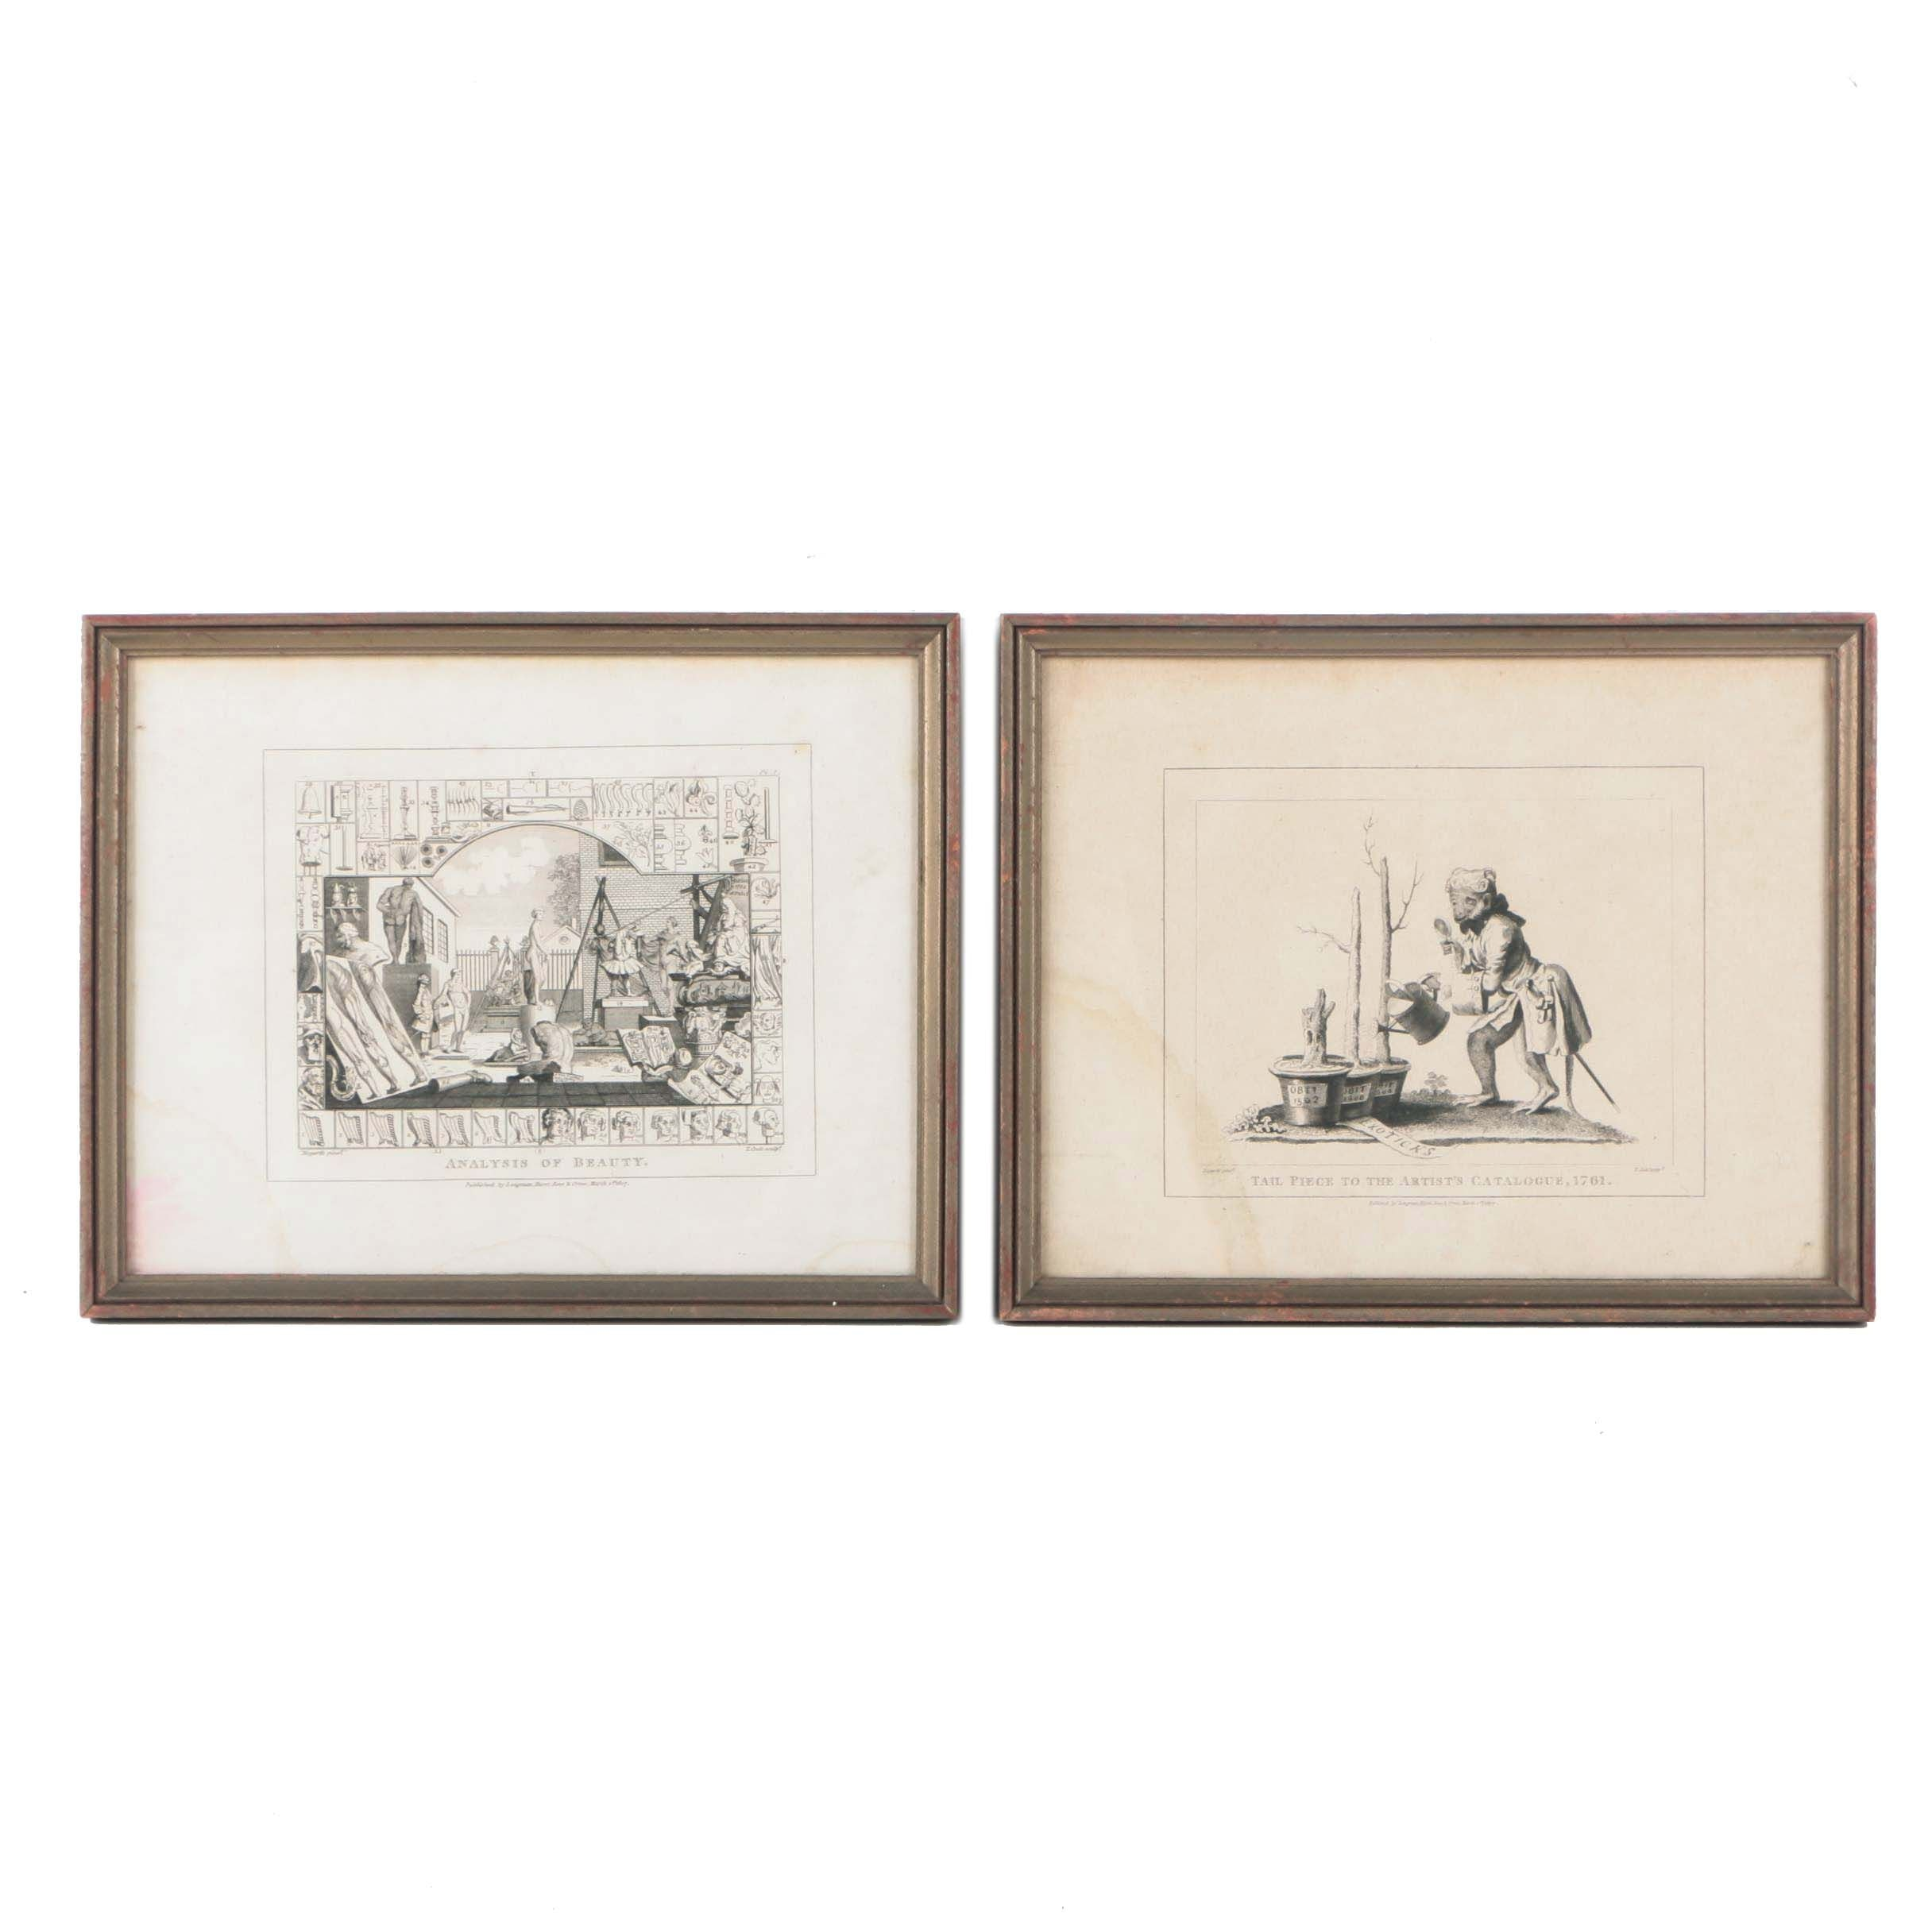 """Thomas Cook Engravings on Paper After William Hogarth """"Tail Piece to the Artist's Catalogue, 1761"""" and """"Analysis of Beauty"""""""